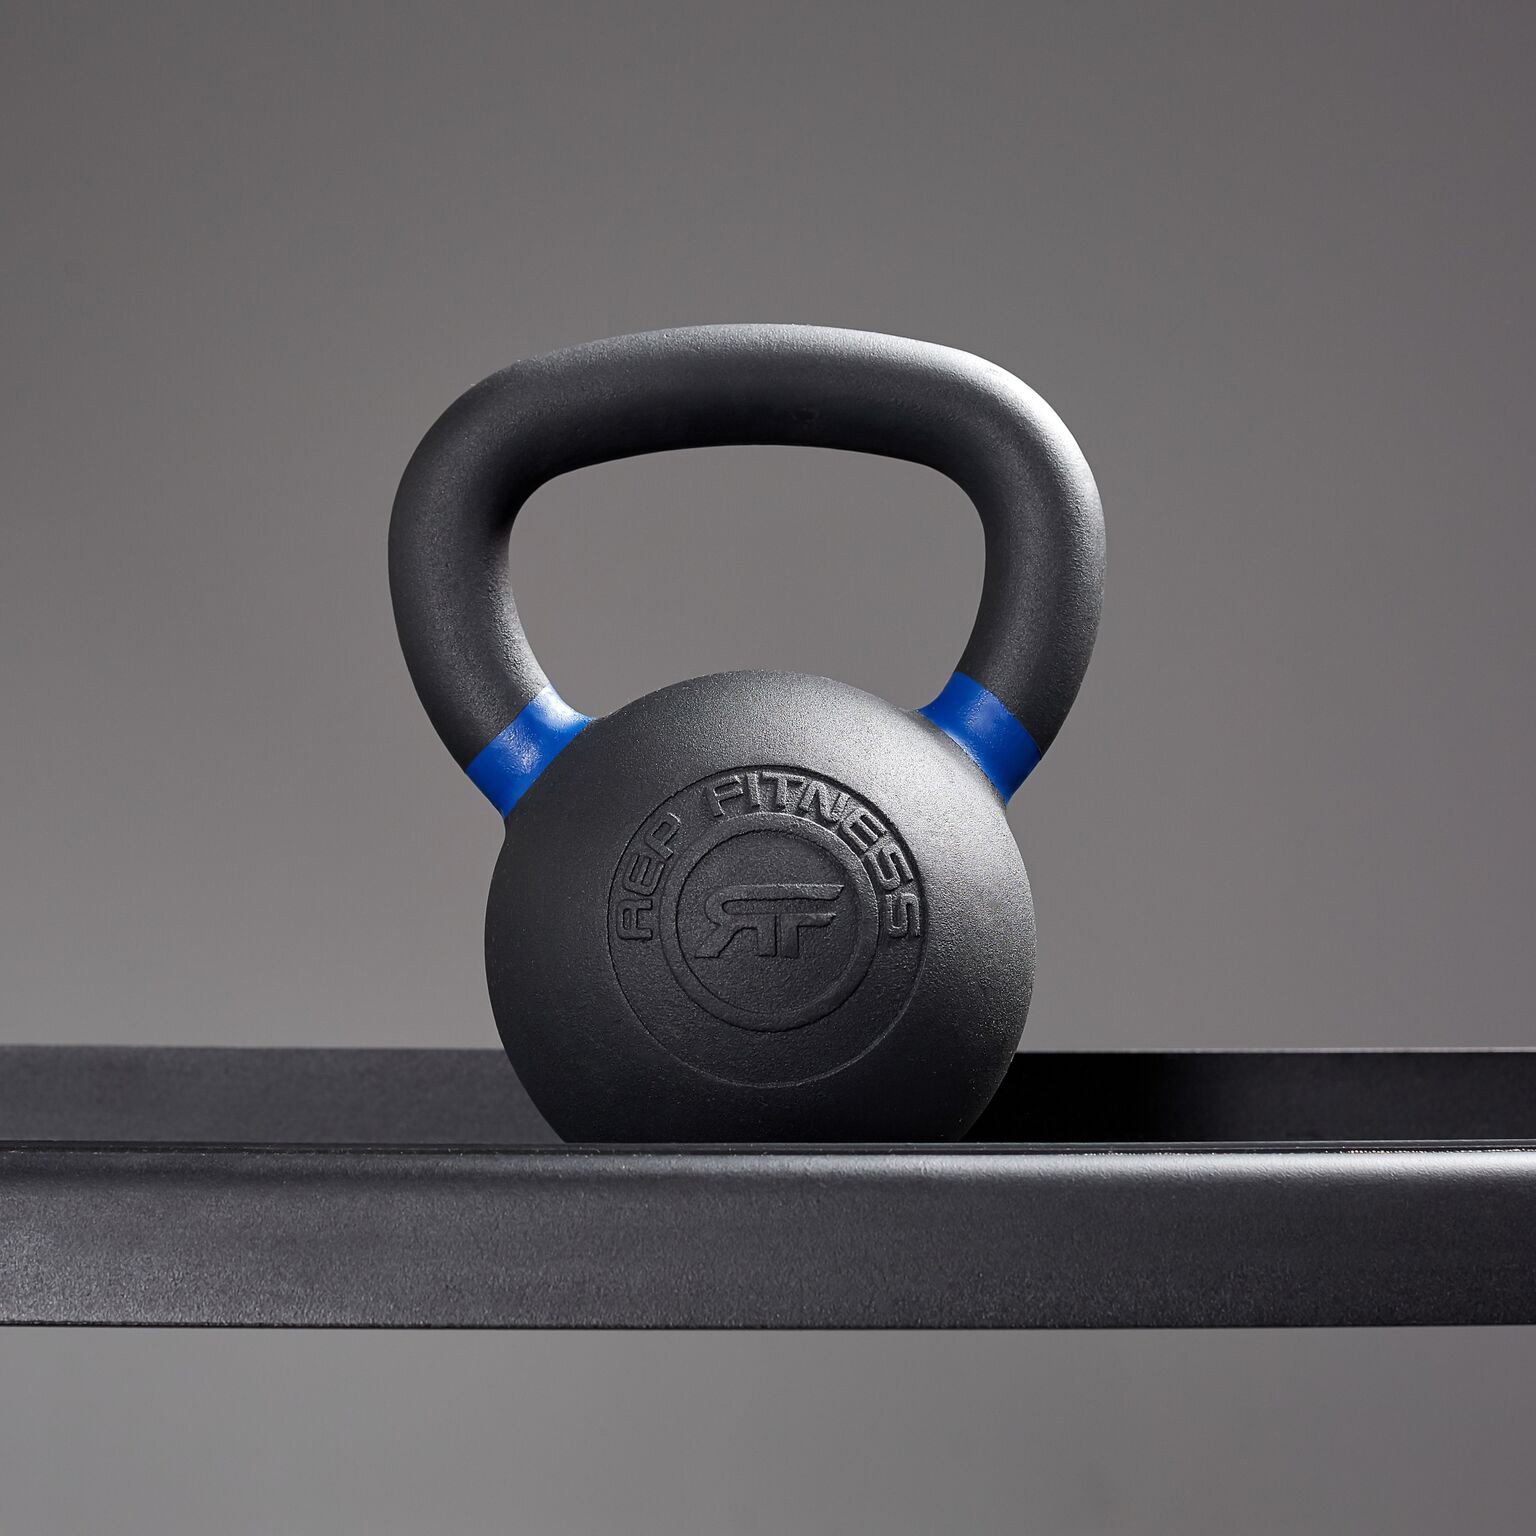 Rep 12 kg Kettlebell for Strength and Conditioning by Rep Fitness (Image #2)